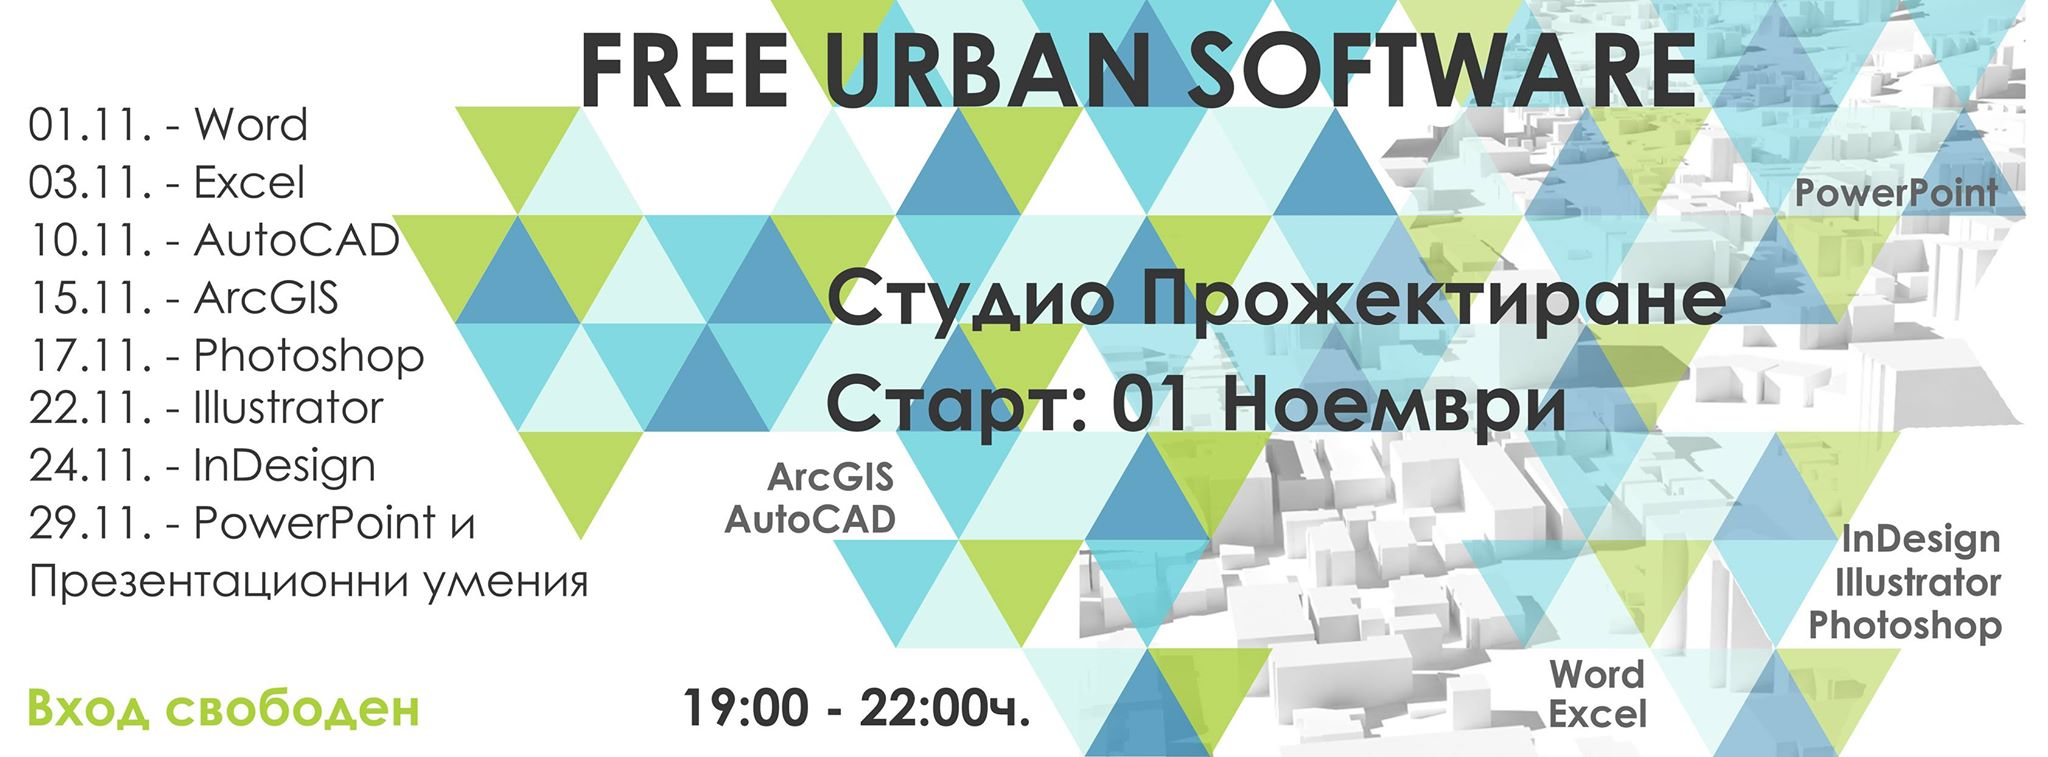 Започва Urban Software 2016!